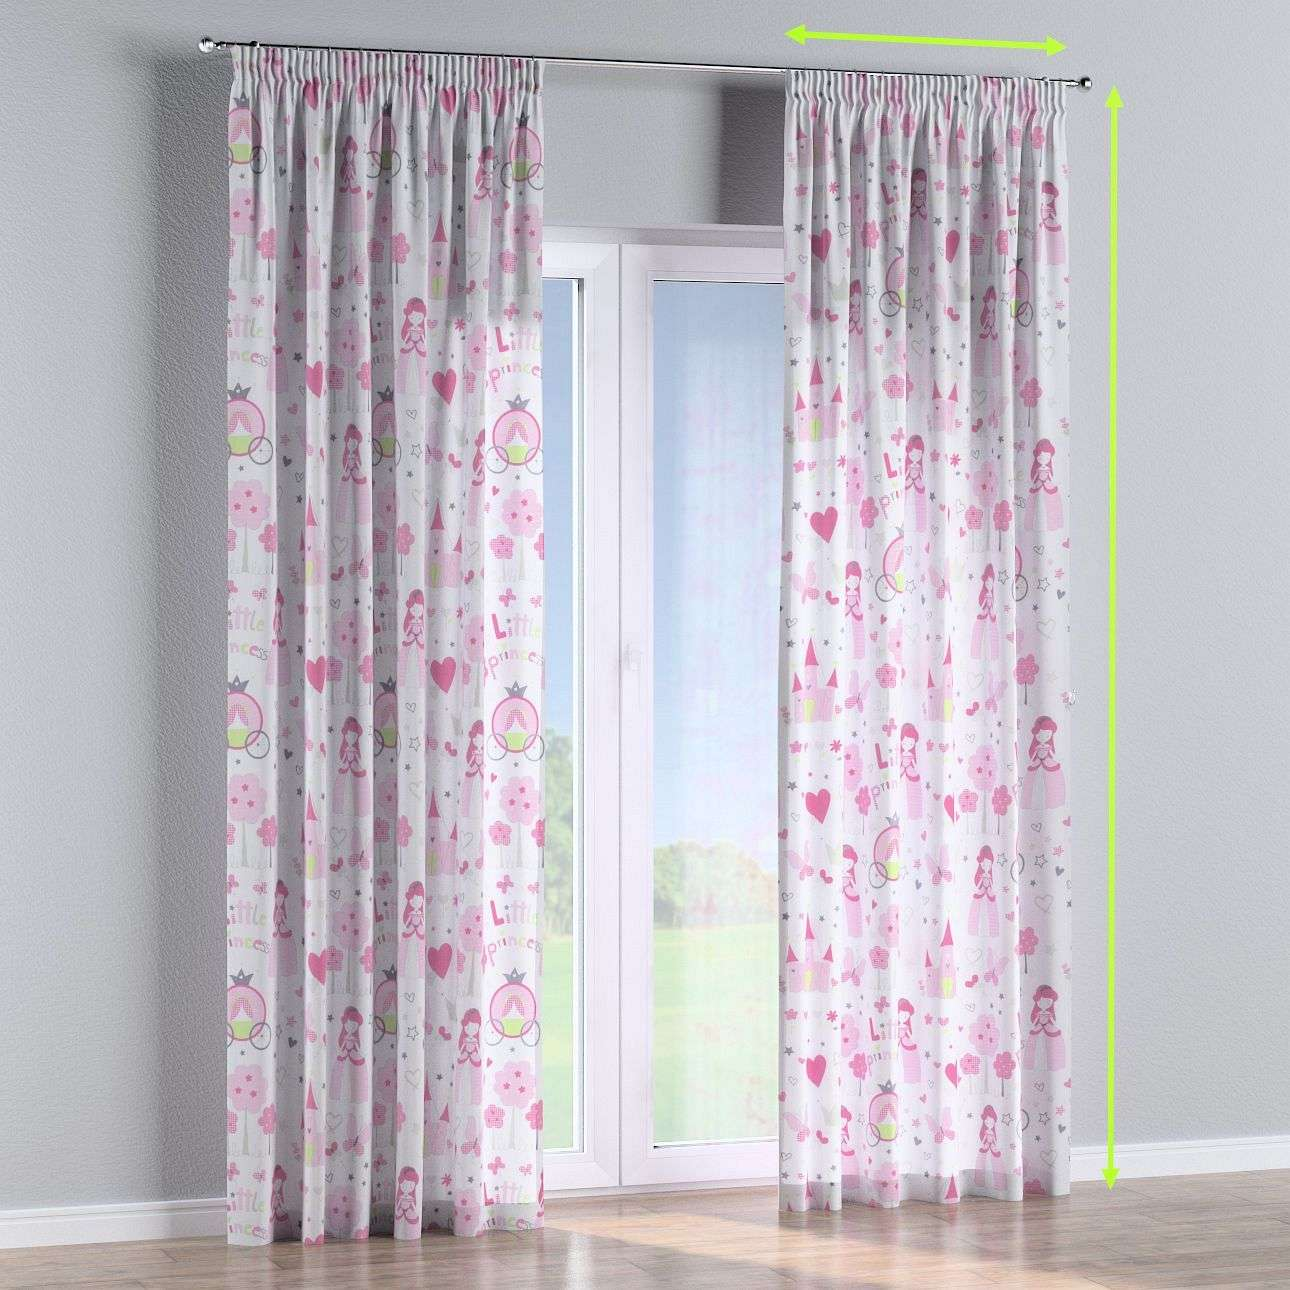 Pencil pleat lined curtains in collection Little World, fabric: 141-28